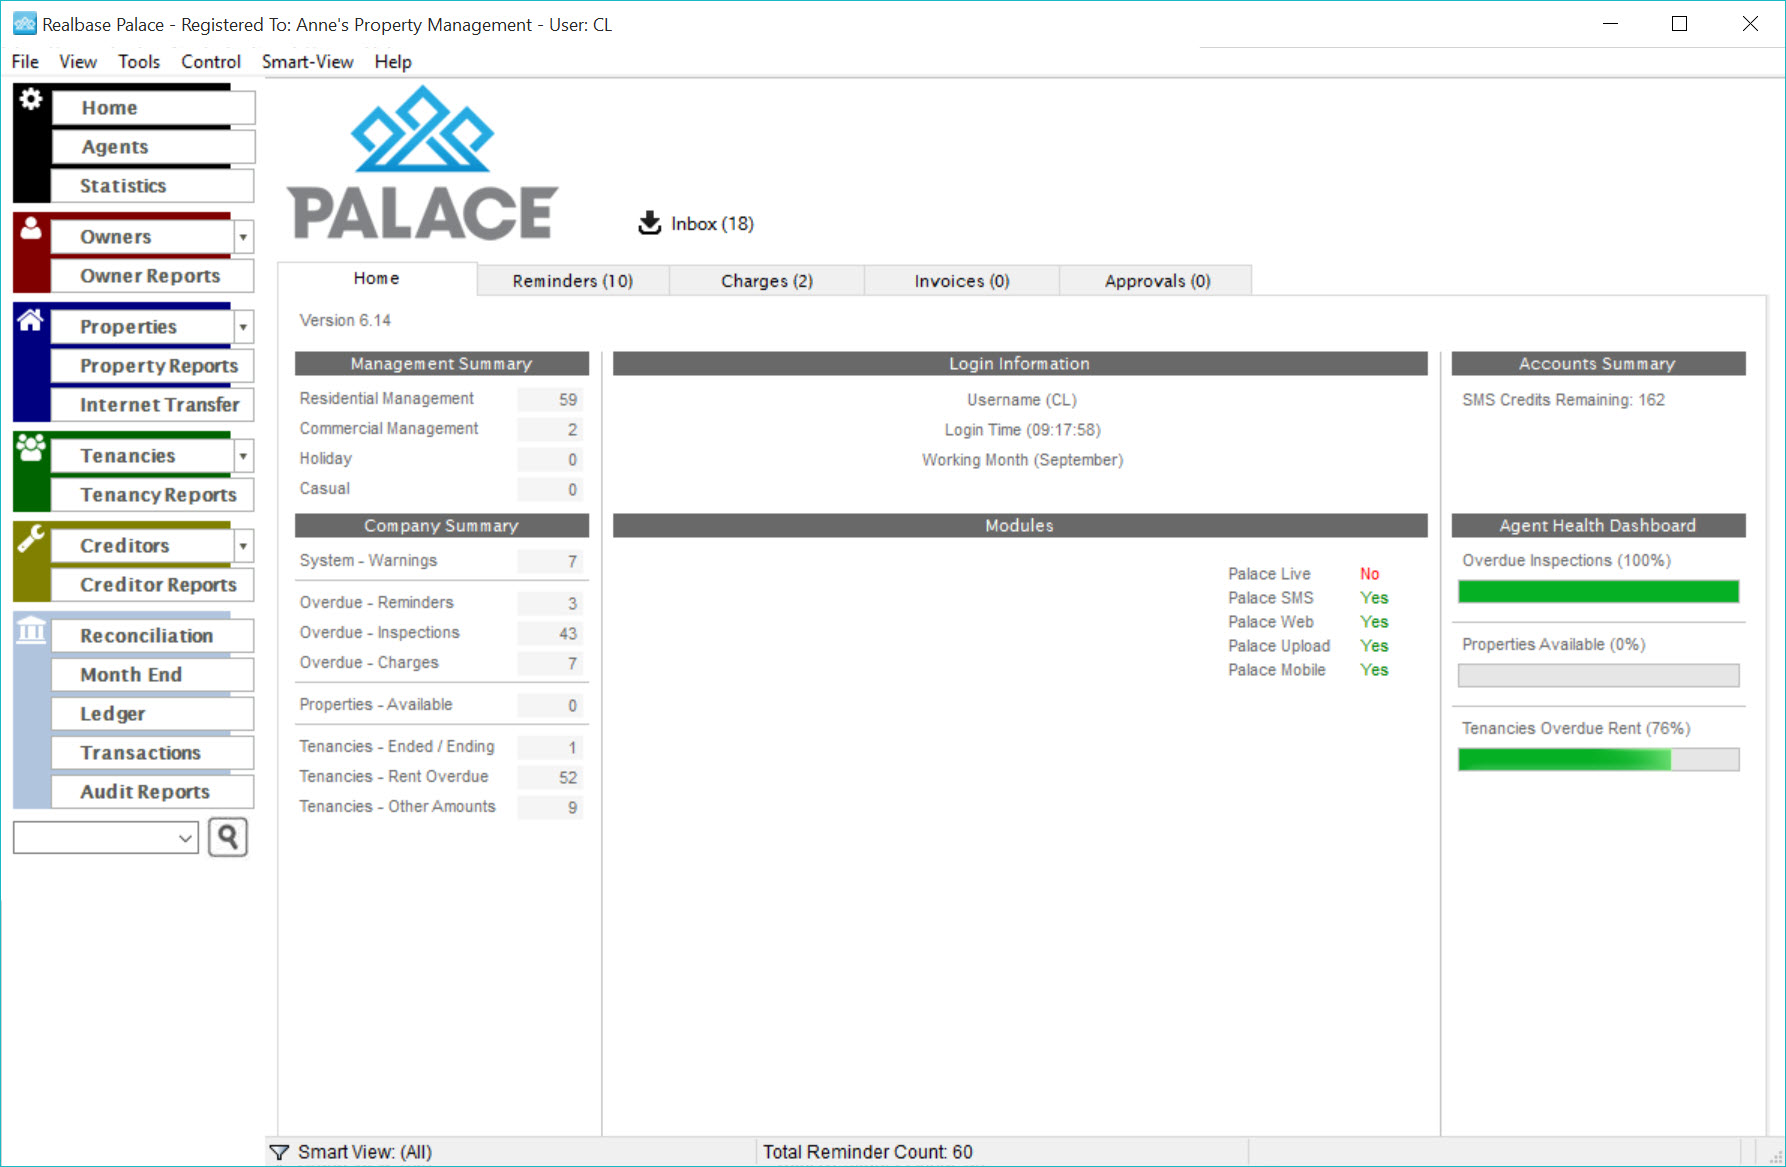 Palace Software - Dashboard view